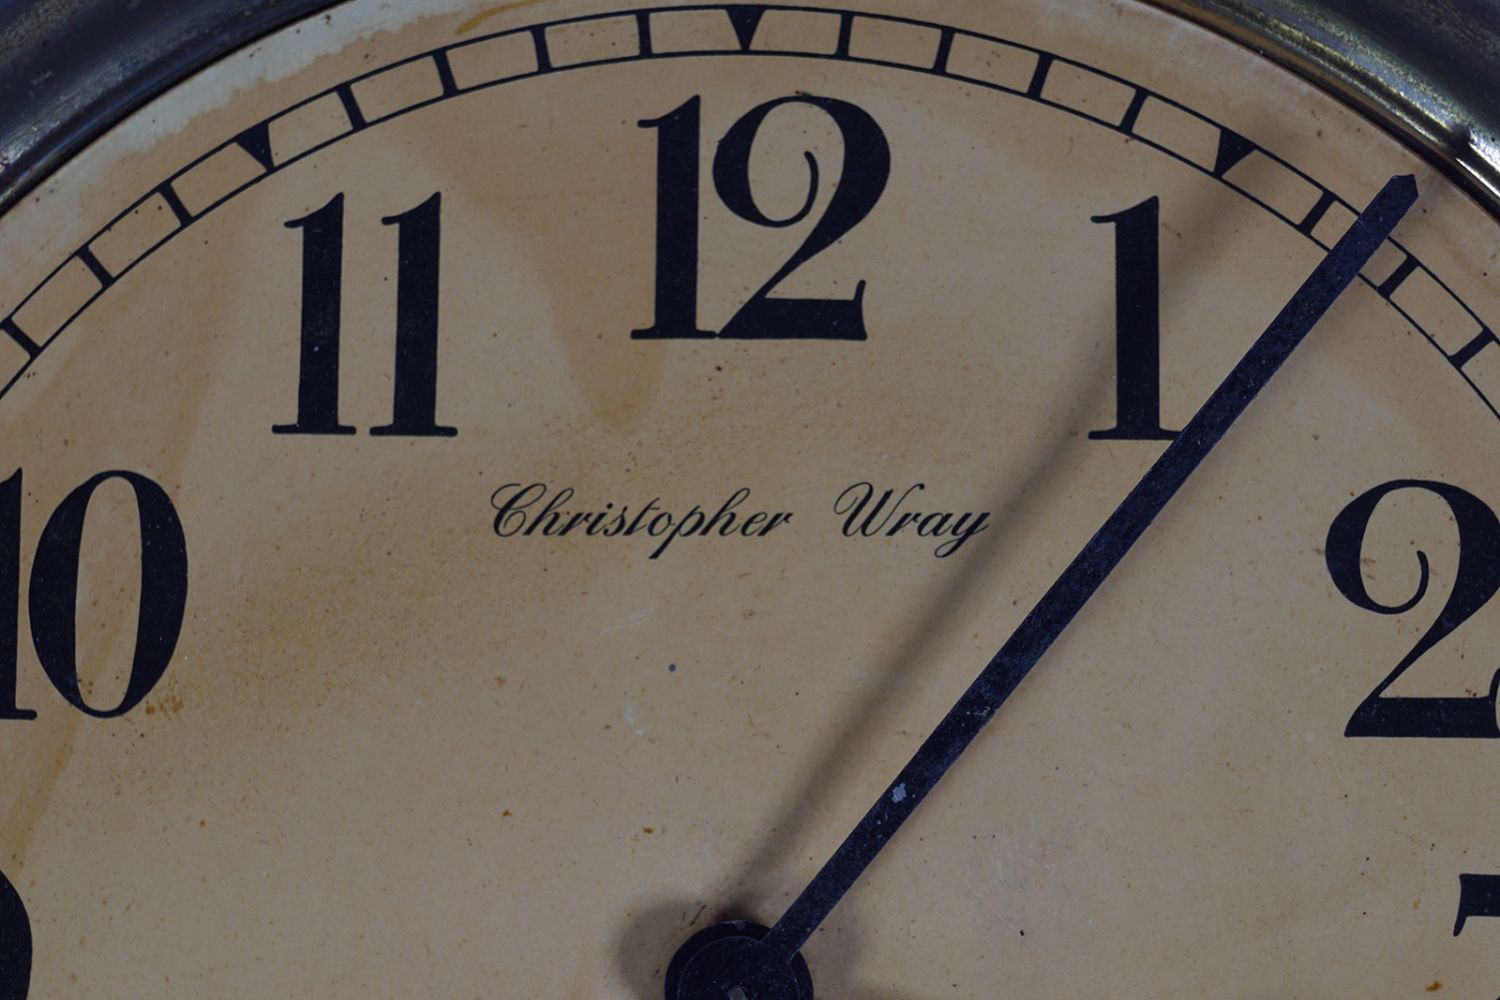 CHRISTOPHER WRAY BRASS CASED CLOCK - Image 2 of 5